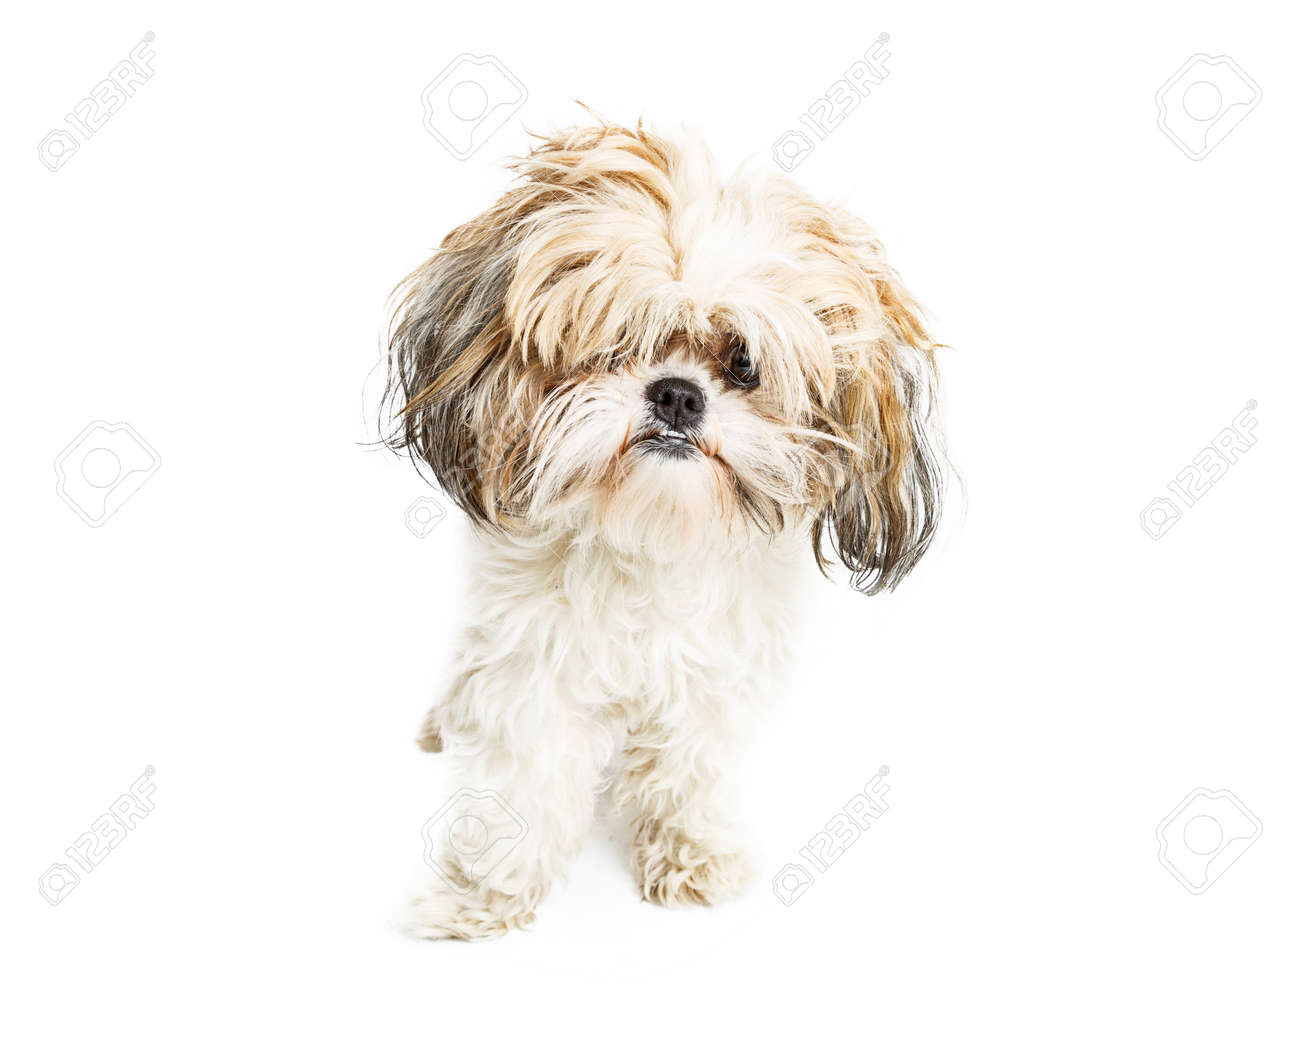 Cute Young Shih Tzu Crossbreed Dog With Messy Long Hair In Eyes